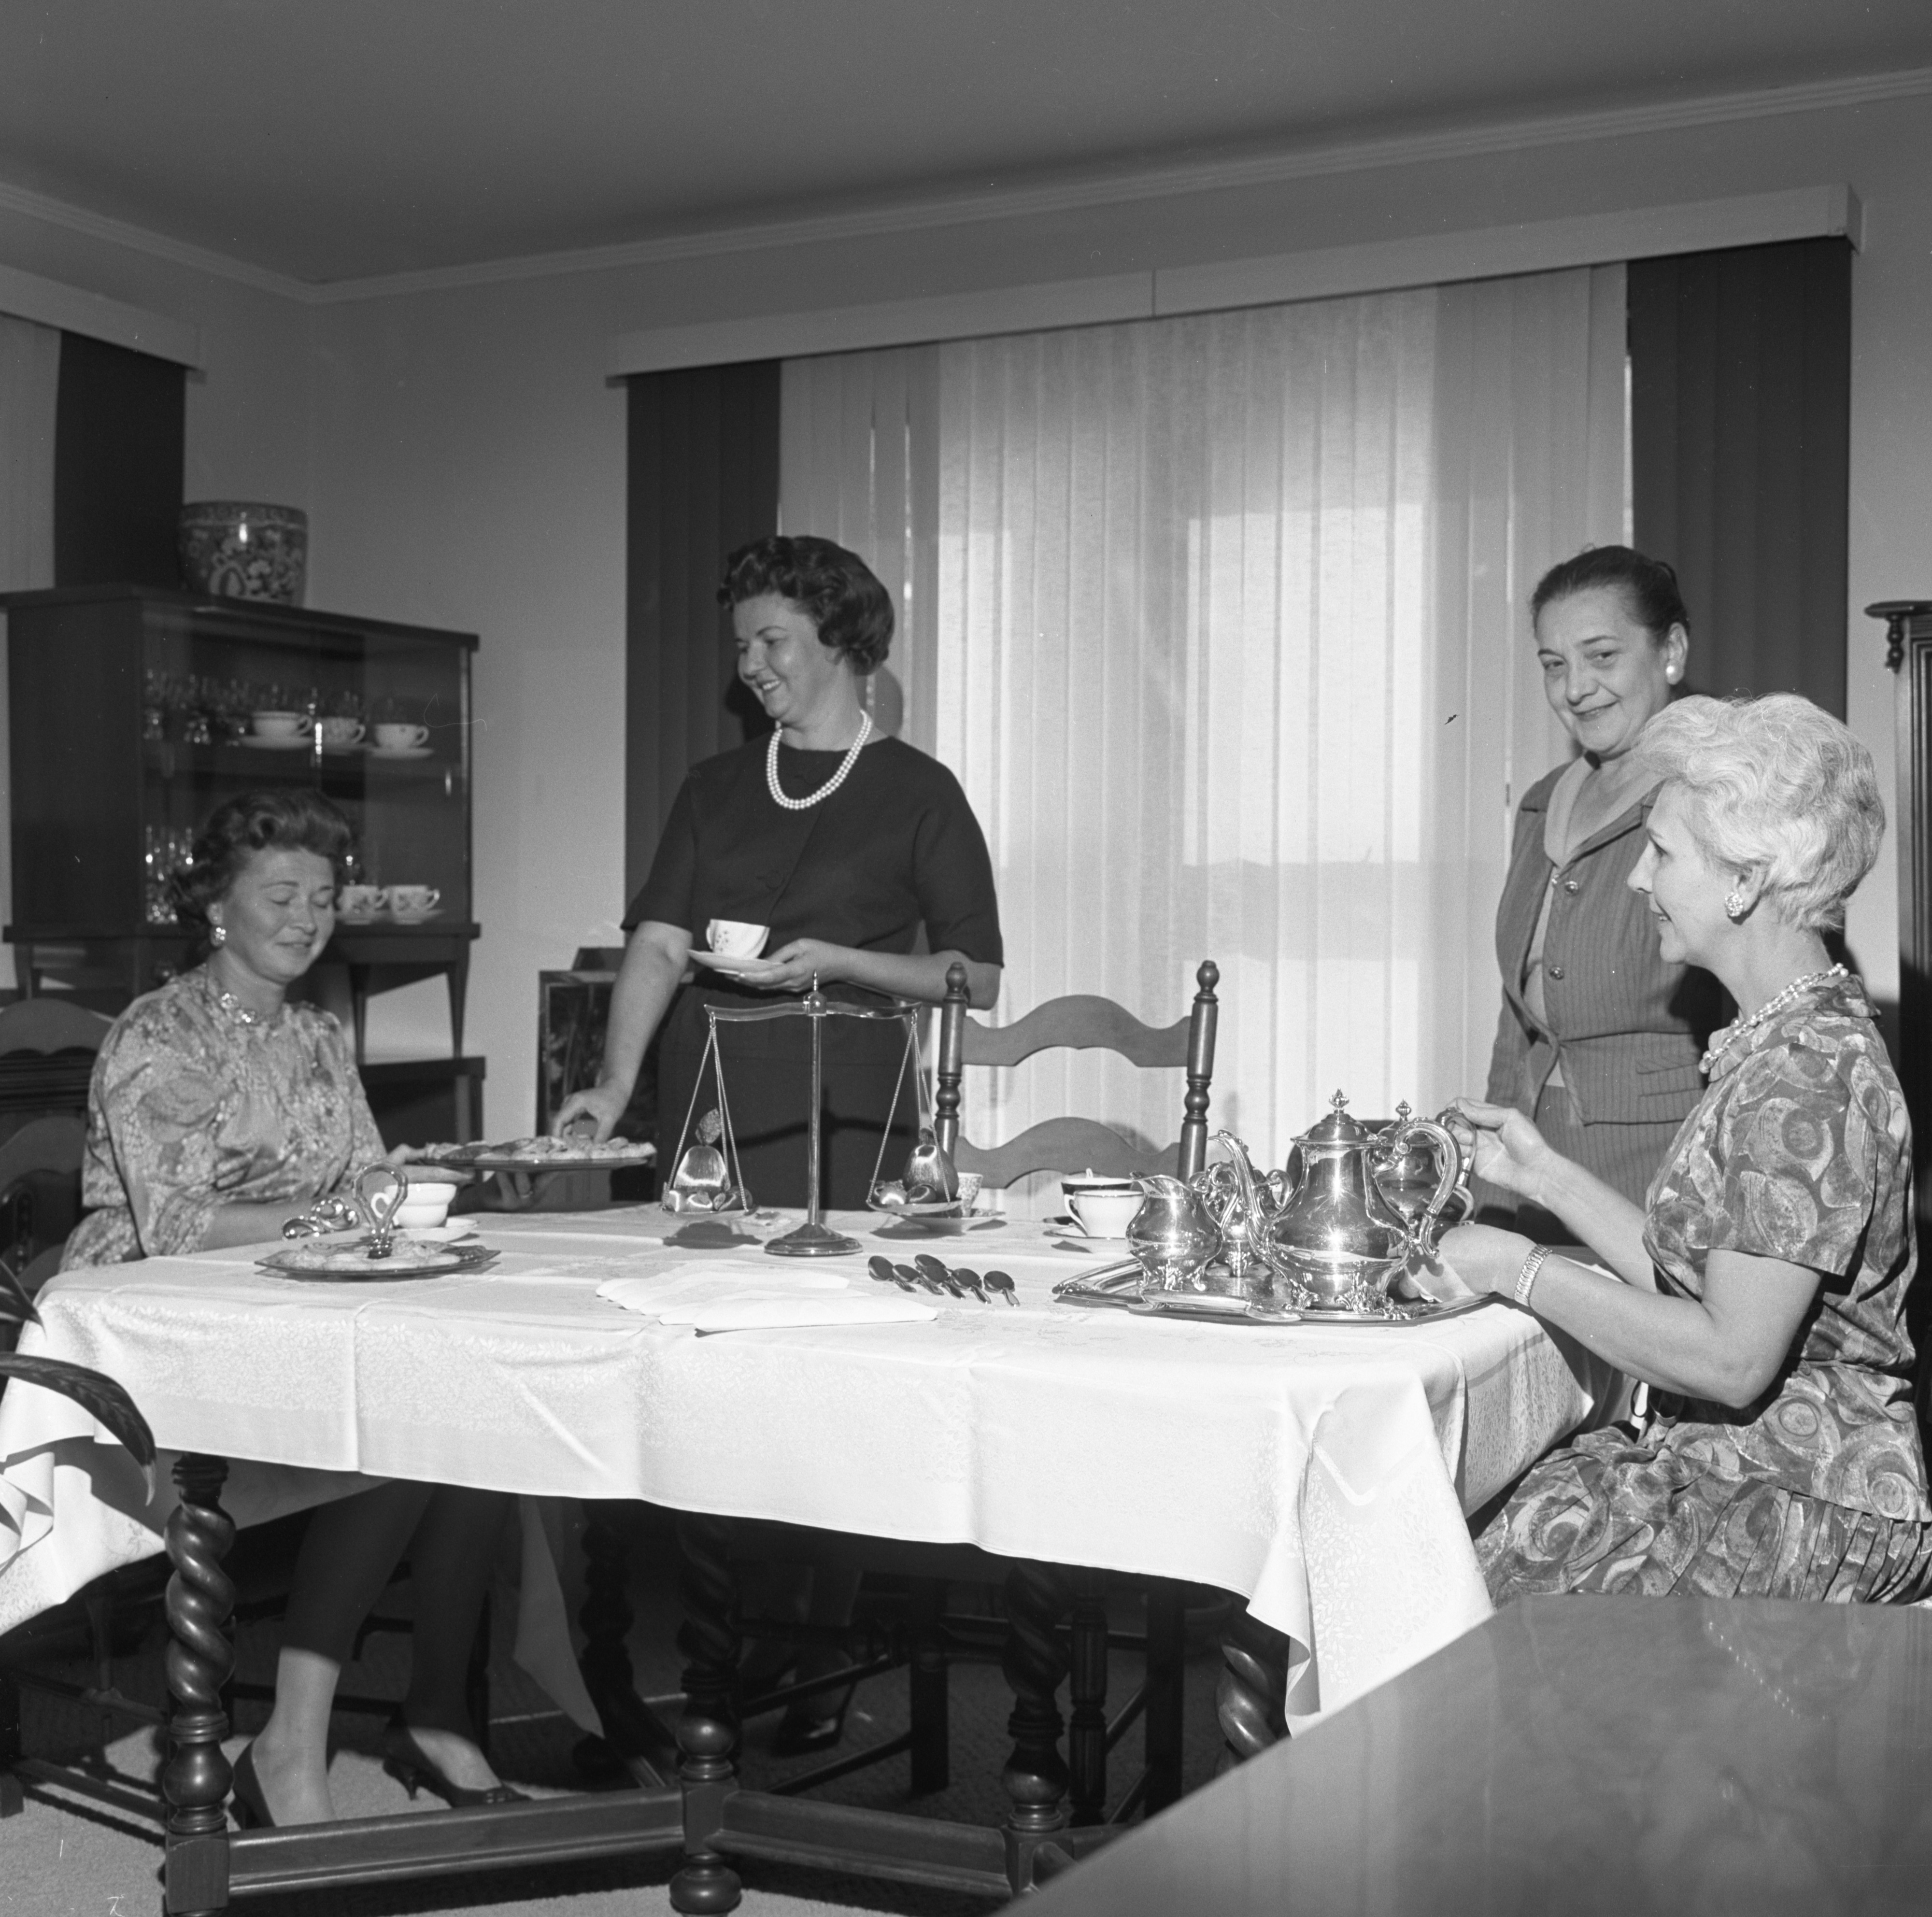 Ann Arbor Civic Ballet Board Members Have Tea, October 1963 image